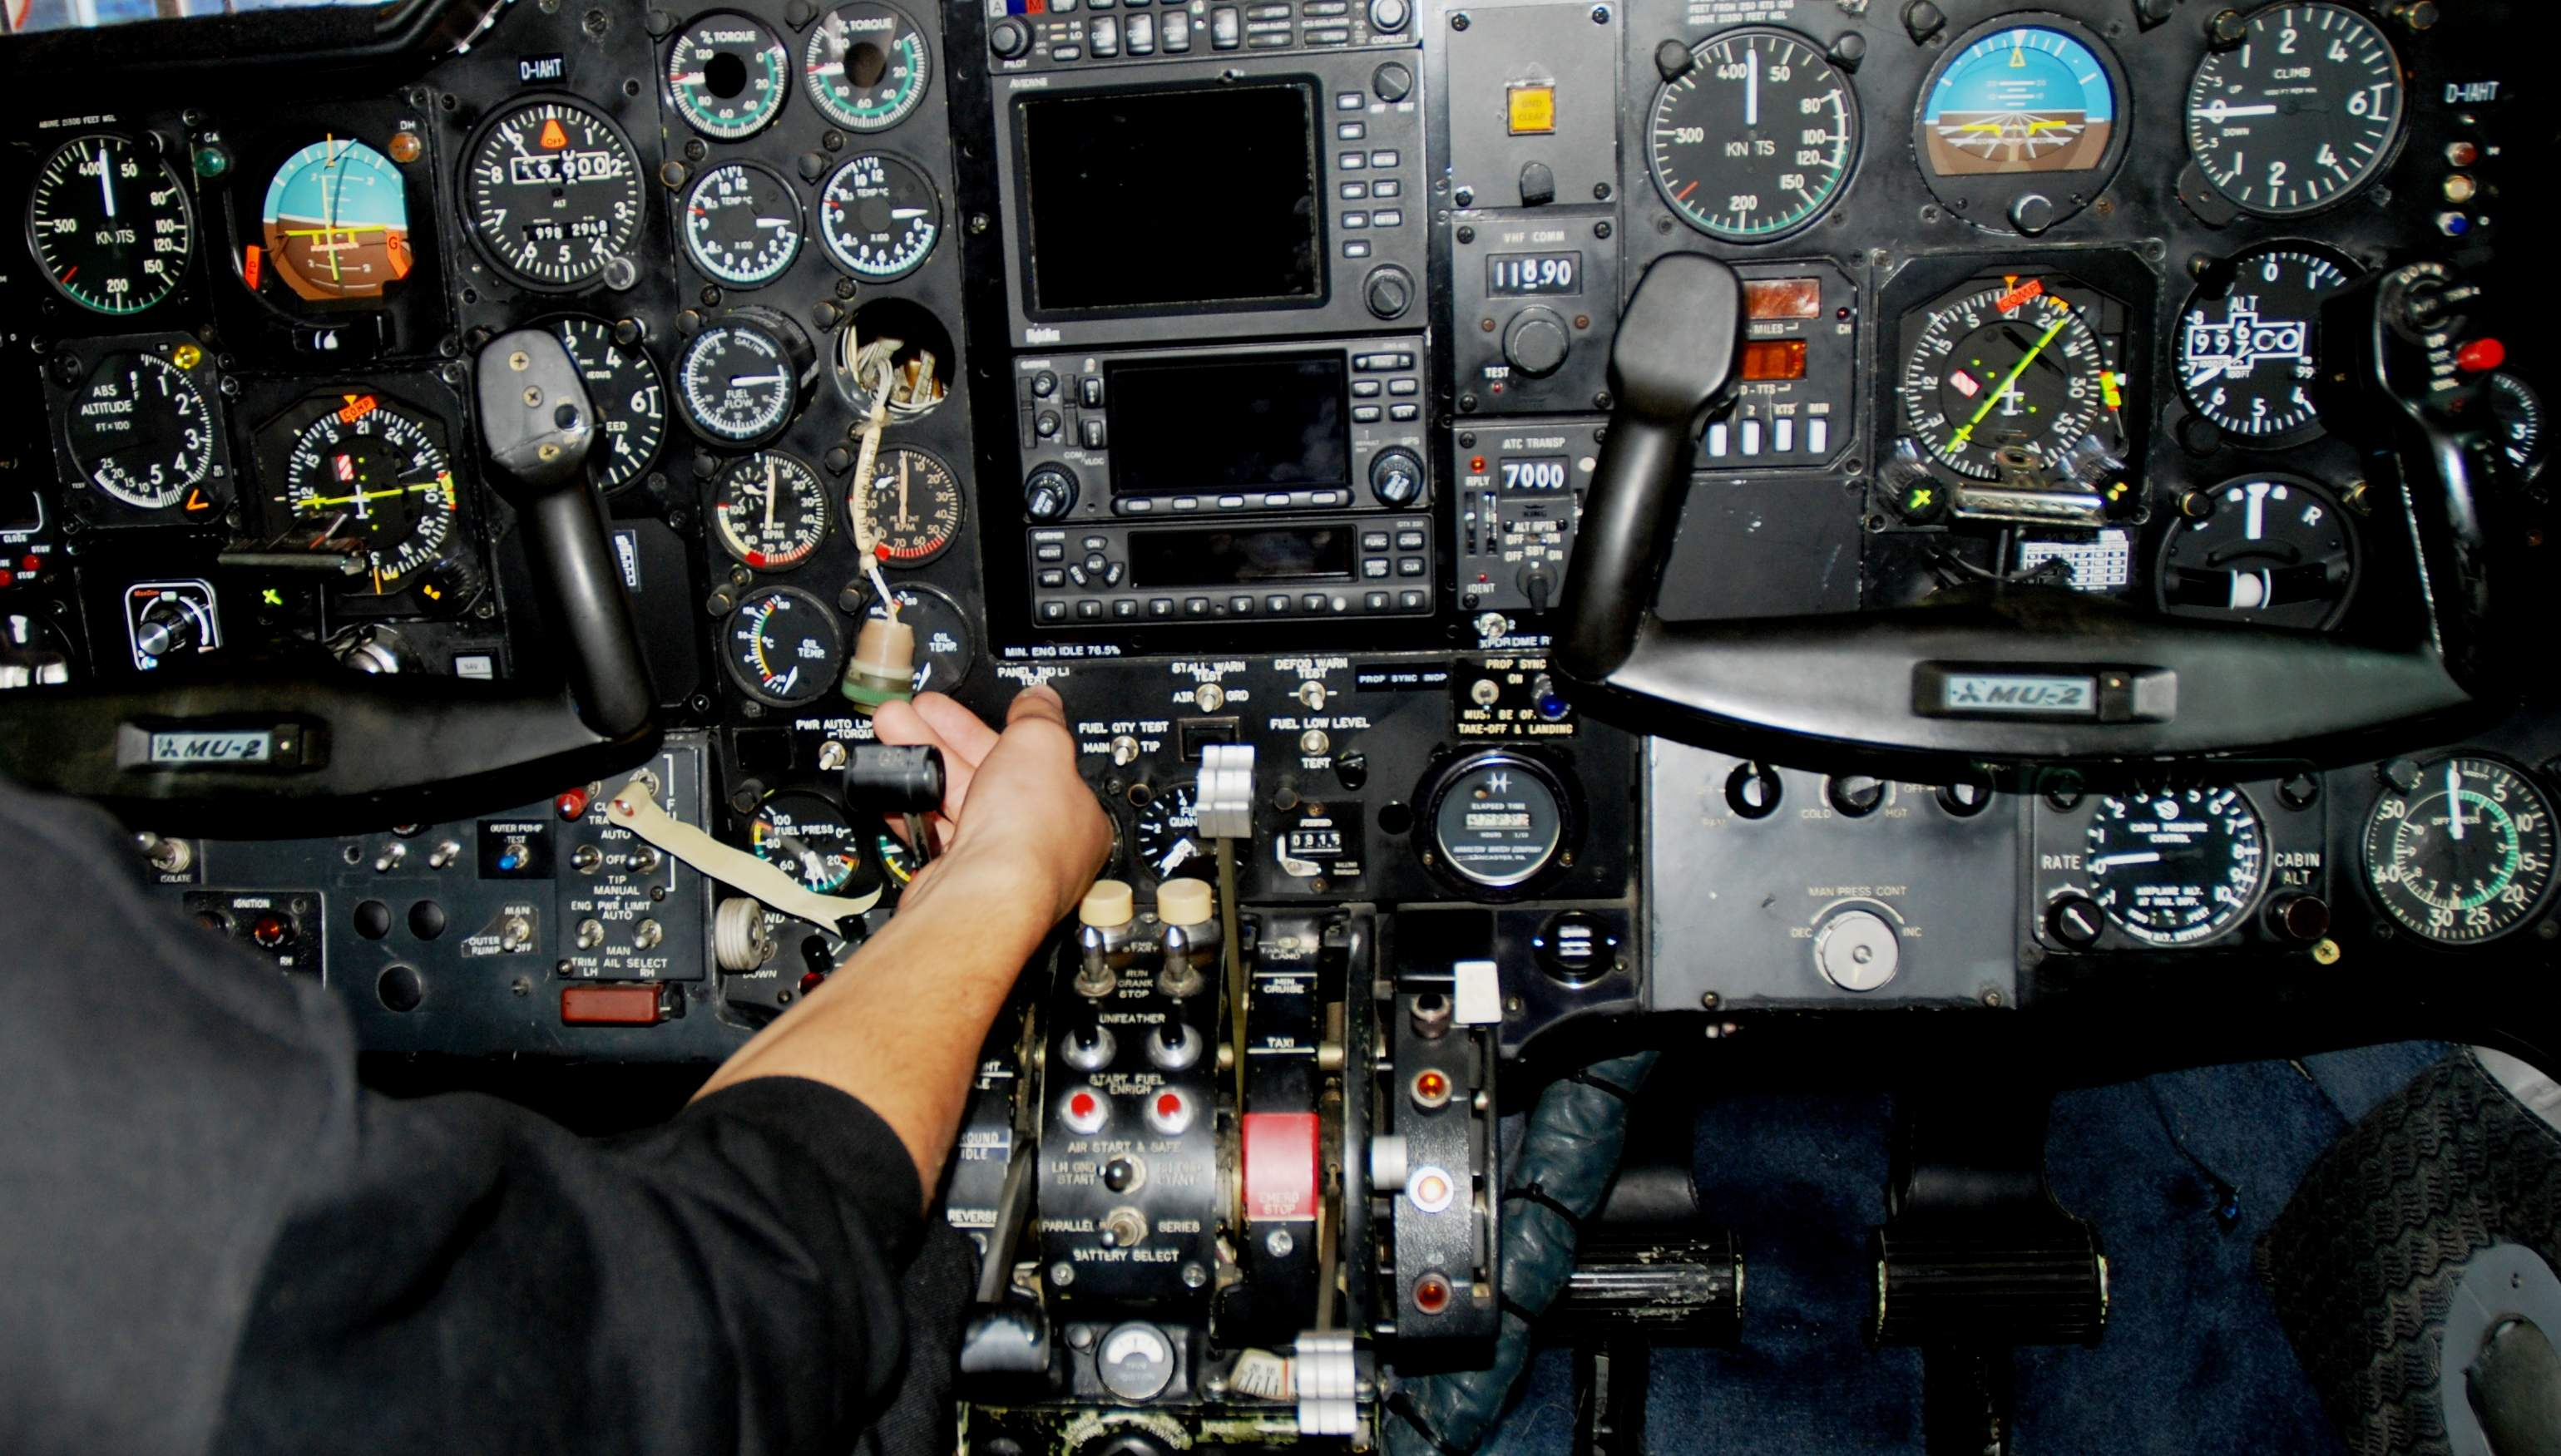 The control panel of an aircraft with a man's hand